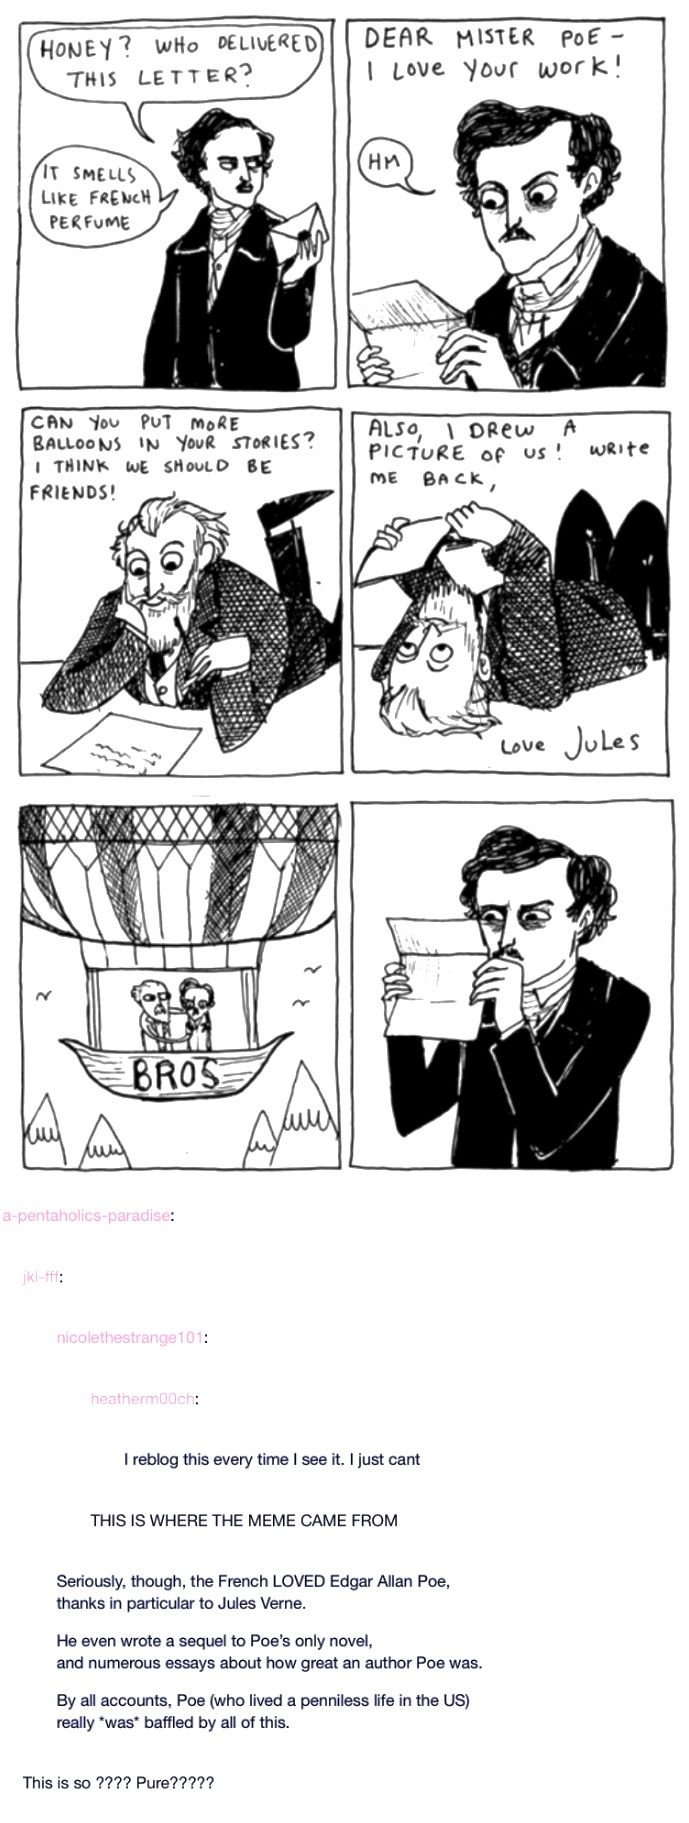 can i say that i **love** when ppl make cute comics abt history